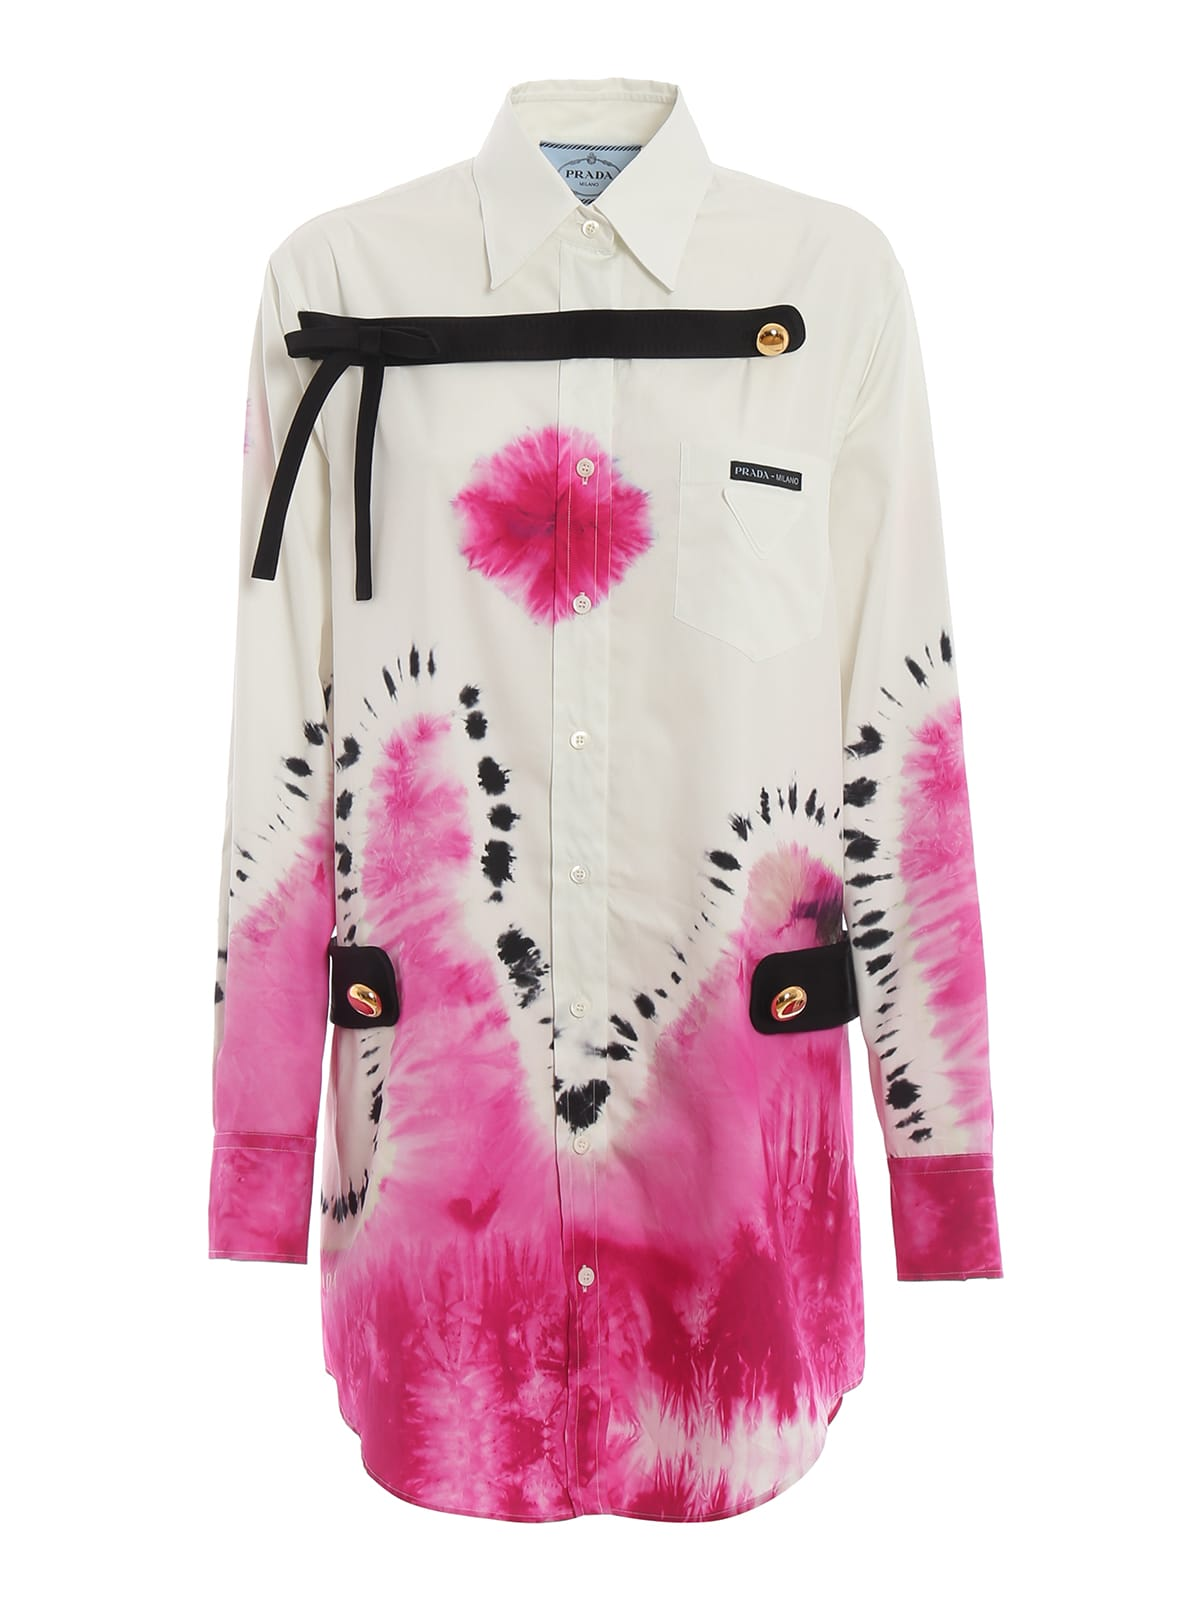 Prada Tie-dye Print Shirt Dress